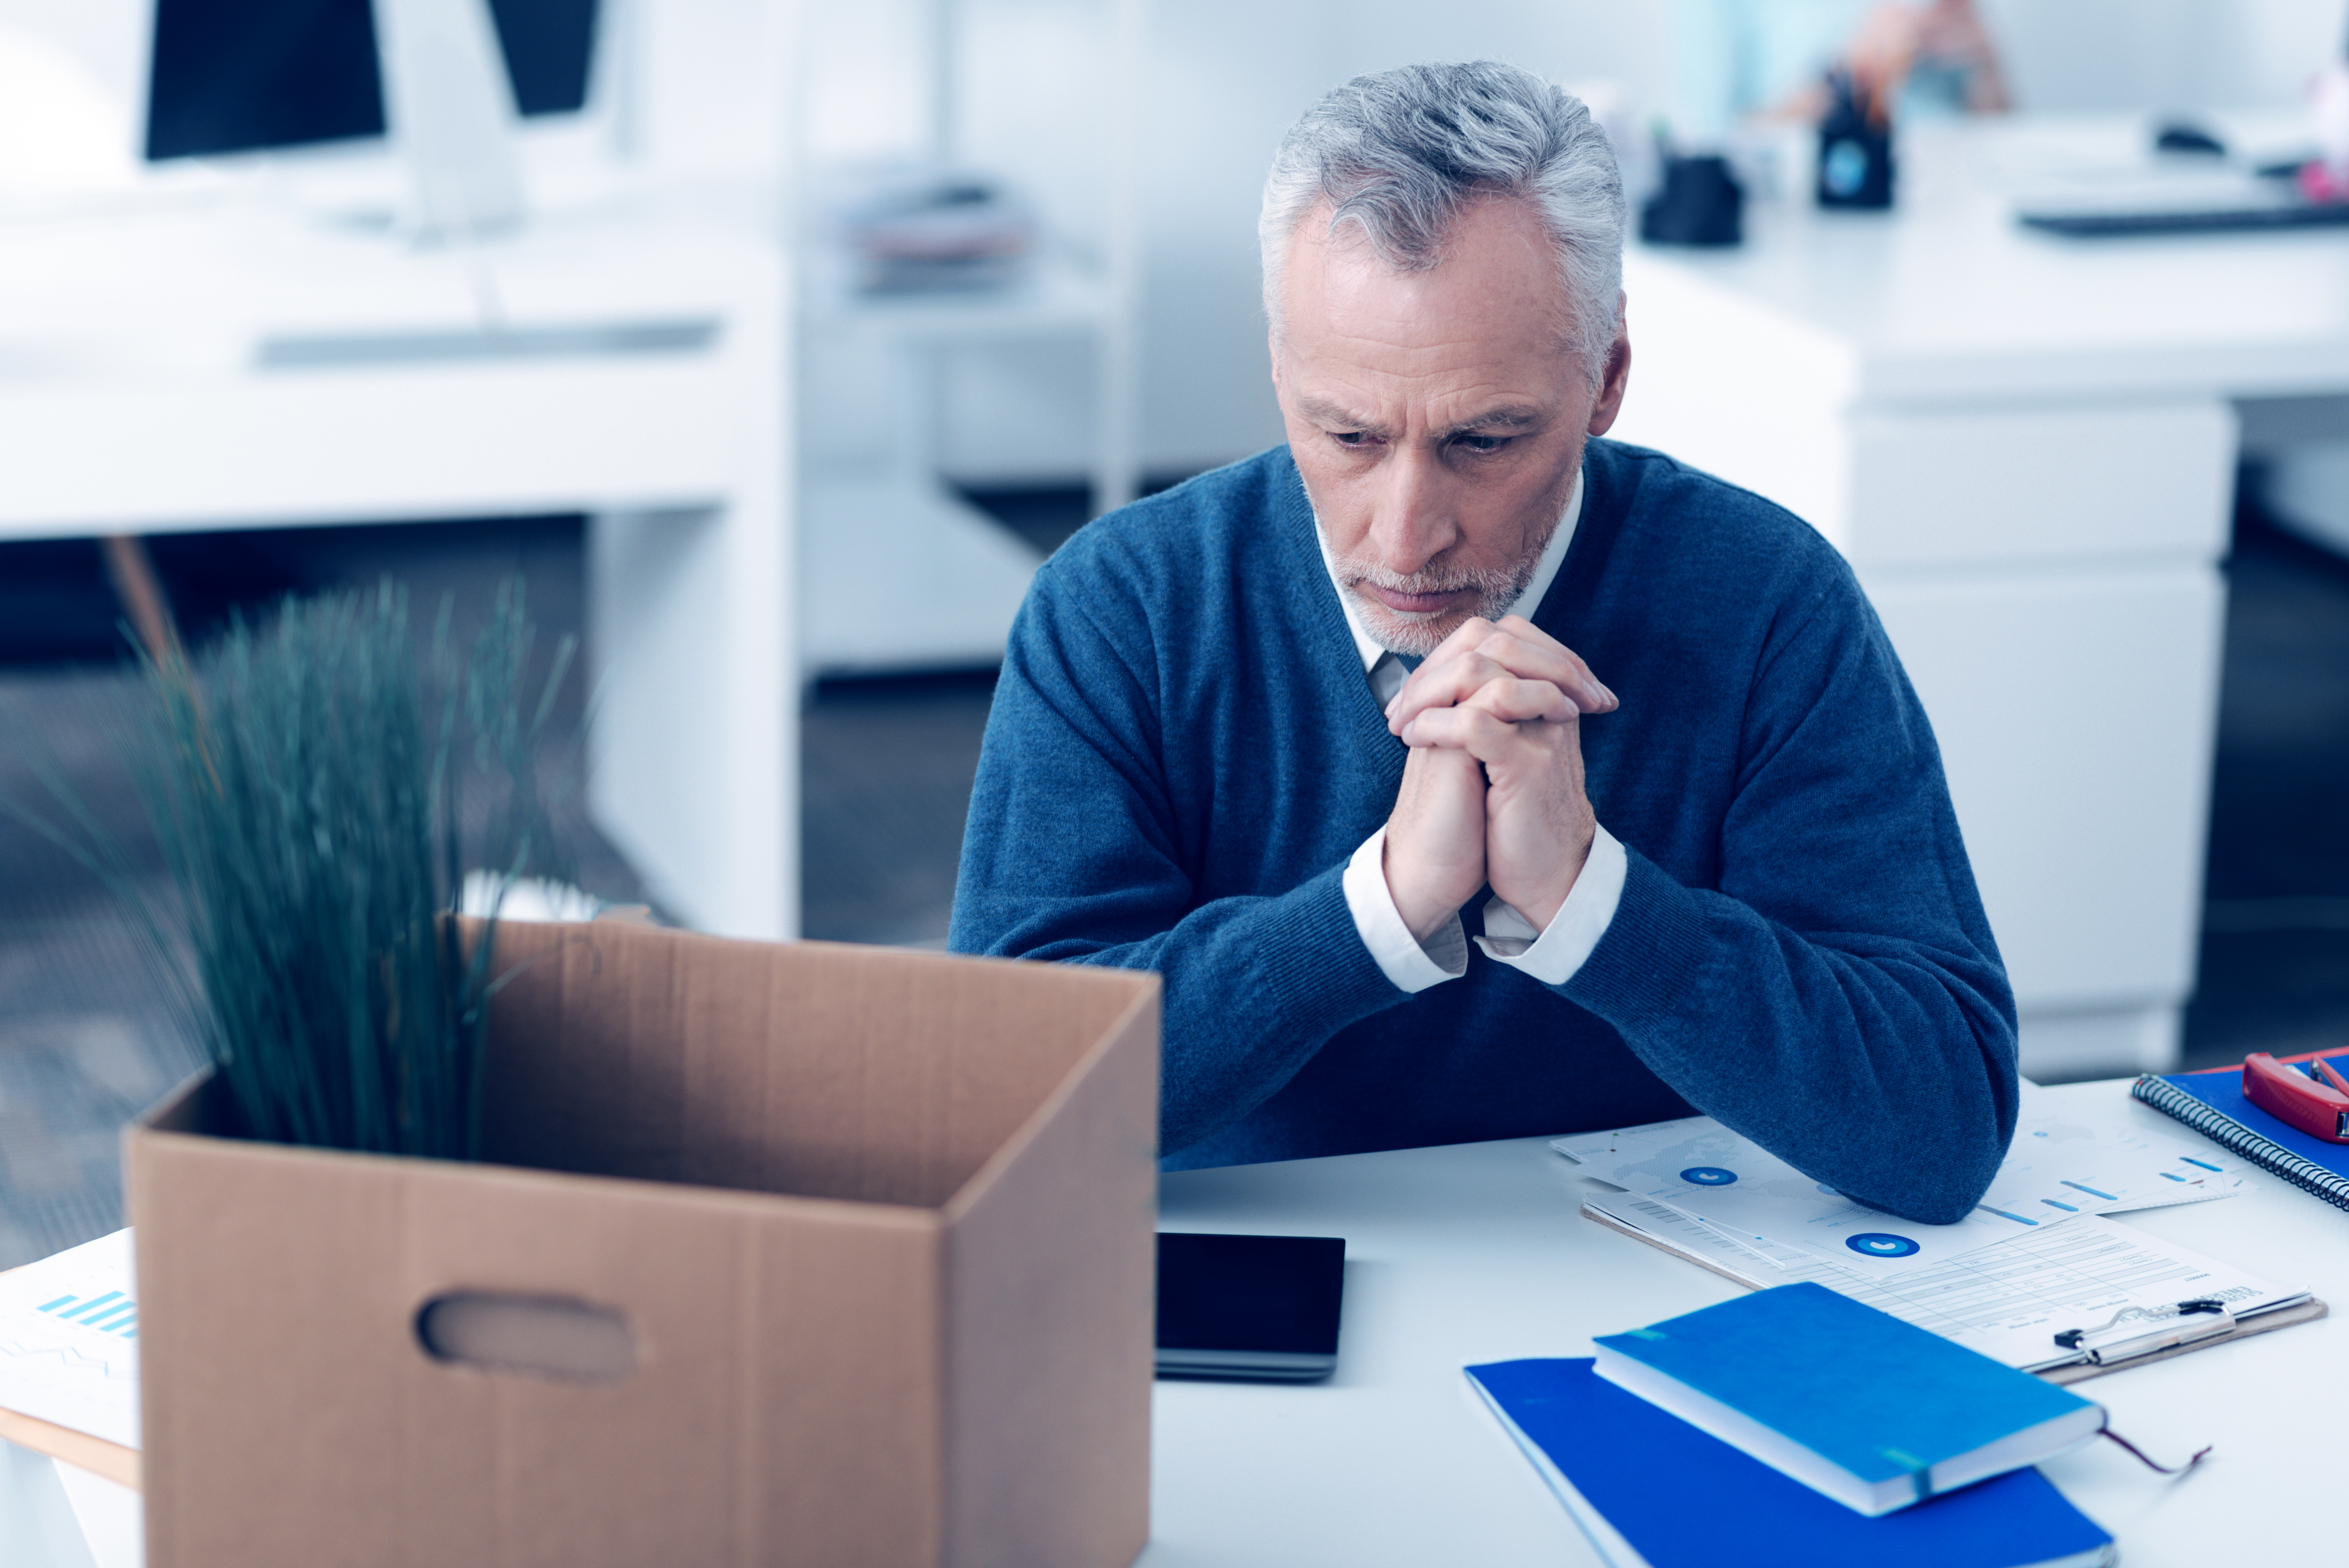 What Do You Put on a Resume if You Are Laid Off? | Career Trend